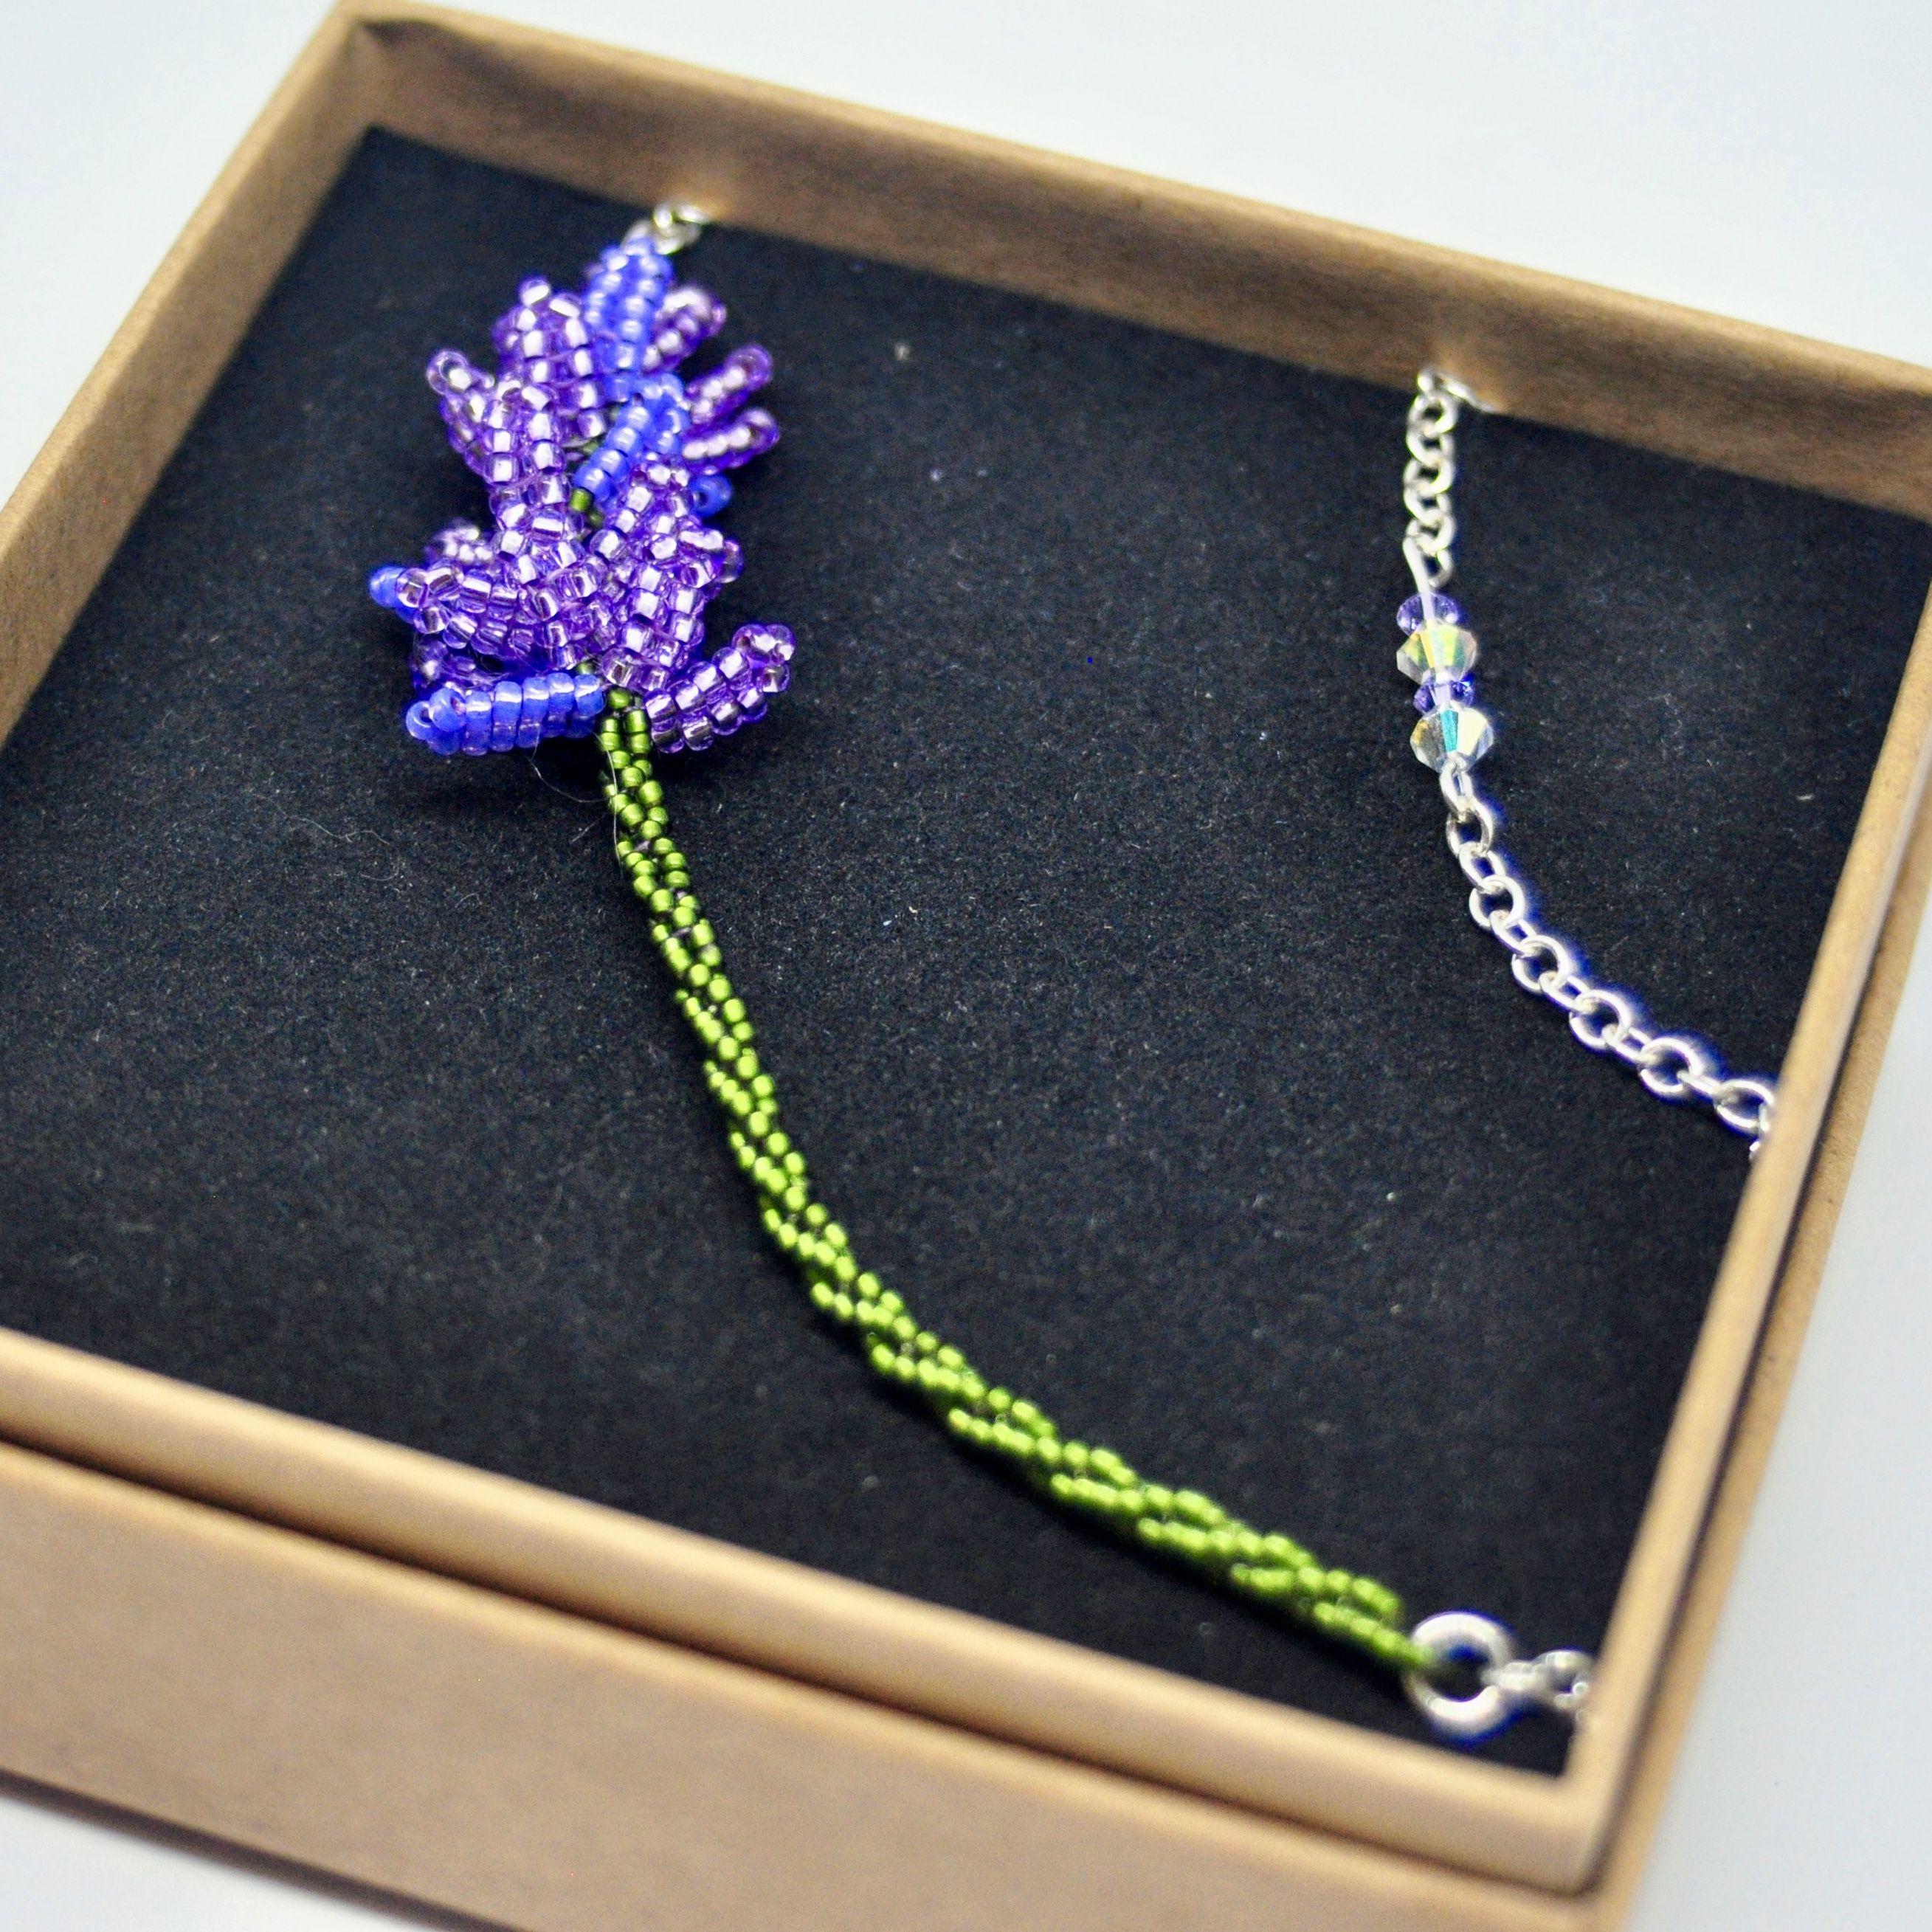 Lavender Necklace Asymmetrical Lavender Necklace Floral Lavender Necklace Lavender Silver Necklace Mother S Day Flower Gift In 2020 Lavender Necklace Flower Necklace Feminine Jewelry